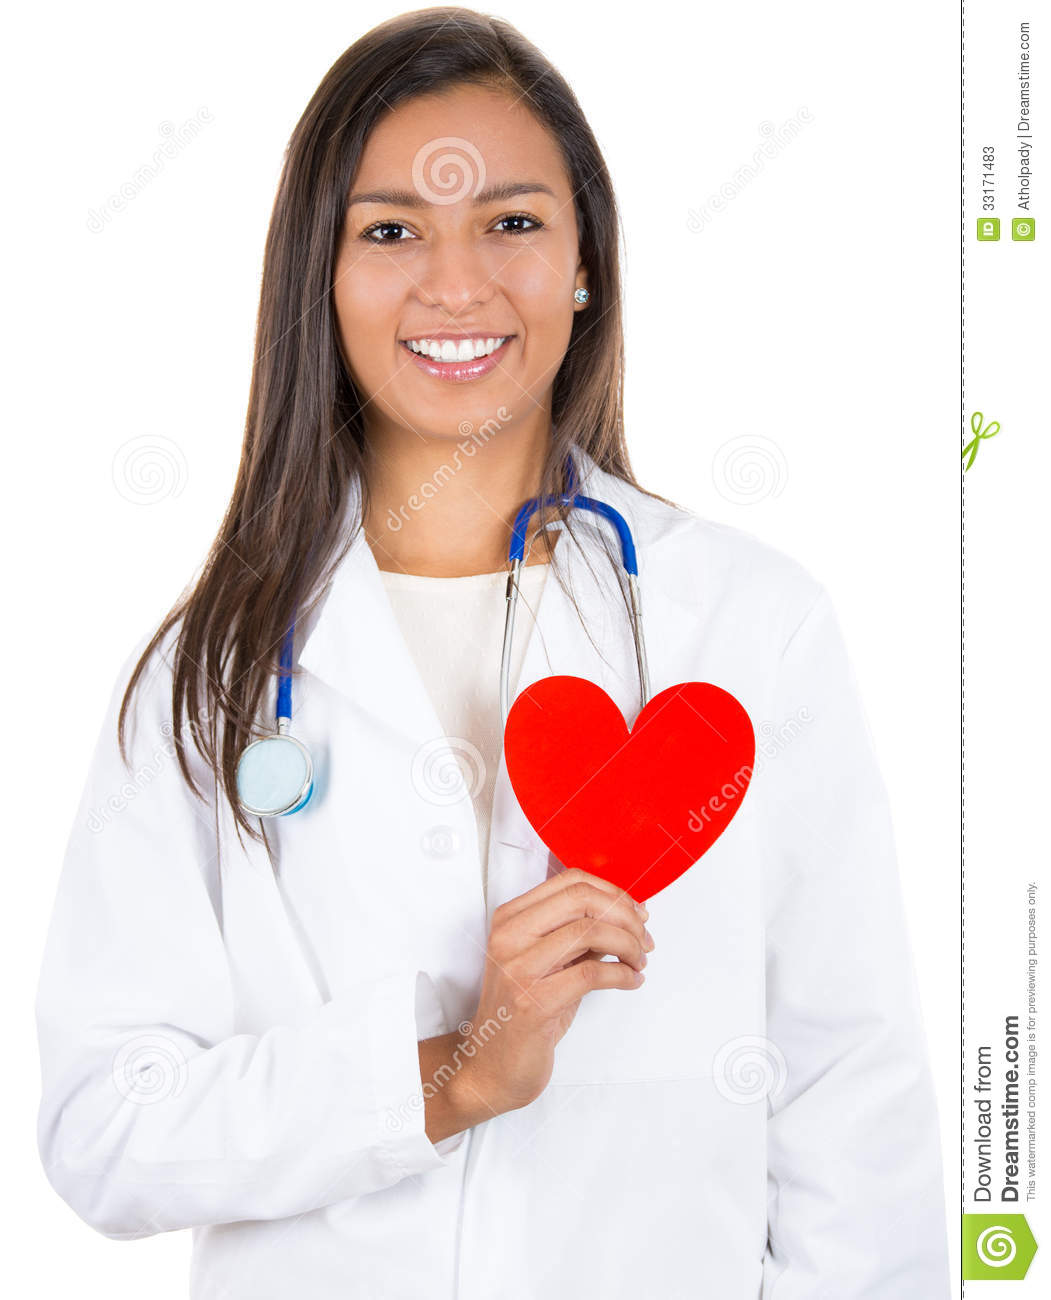 Doctor Or Nurse Holding Heart To Heart Stock Photos - Image: 33171483